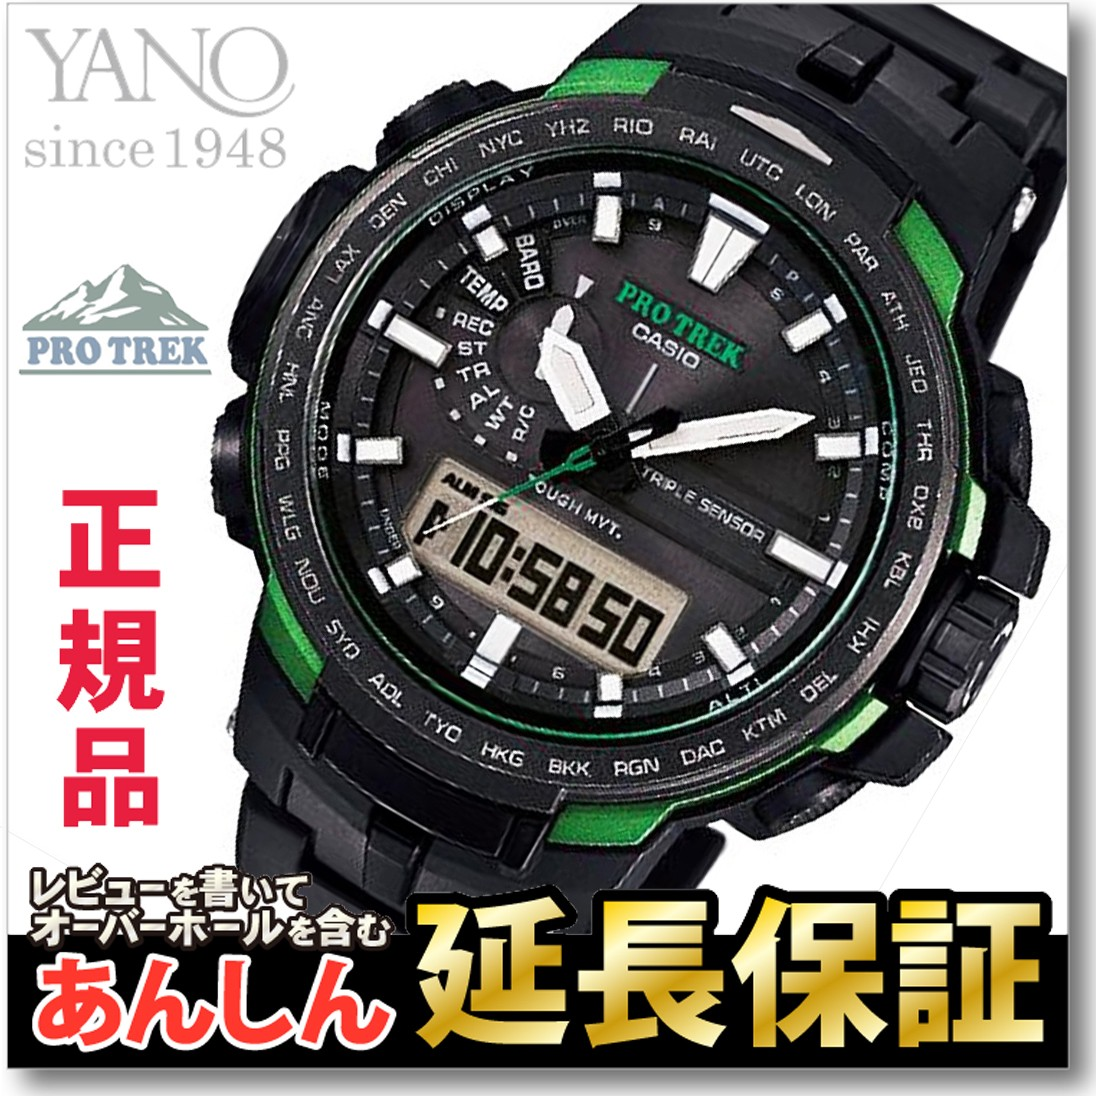 casio watch htm sale zoom chronograph g shock gw digitals watches tough man en